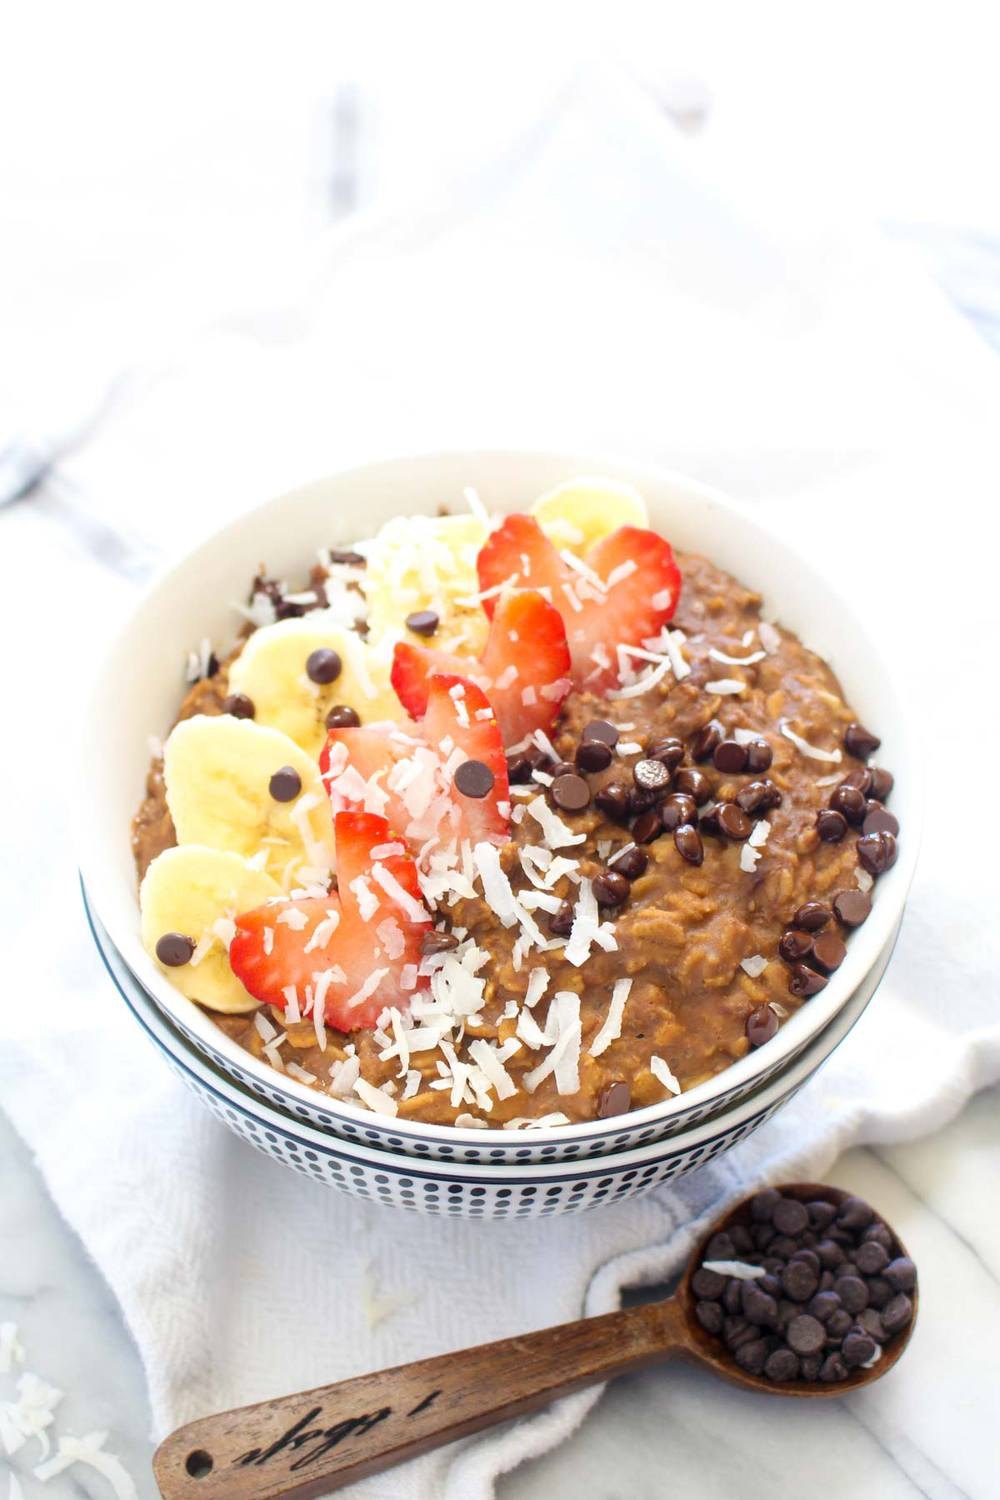 Chocolate Protein Oatmeal (no protein powder) Recipe | HeyFood — heyfoodapp.com